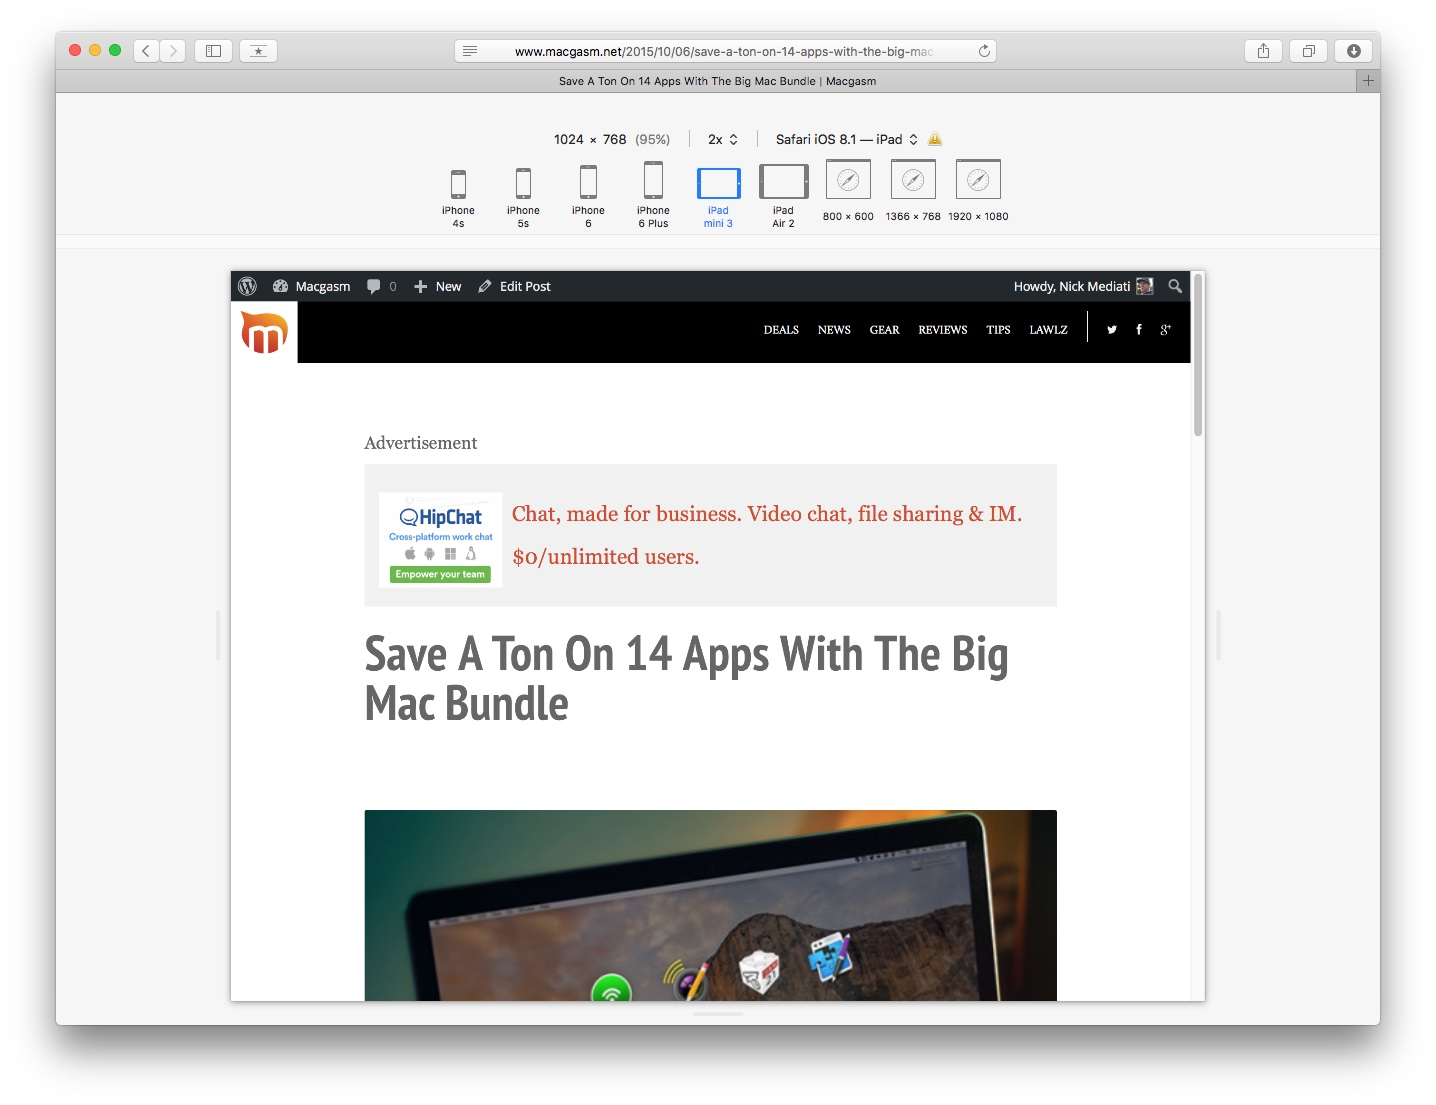 A Macgasm article page, as viewed in responsive design mode.